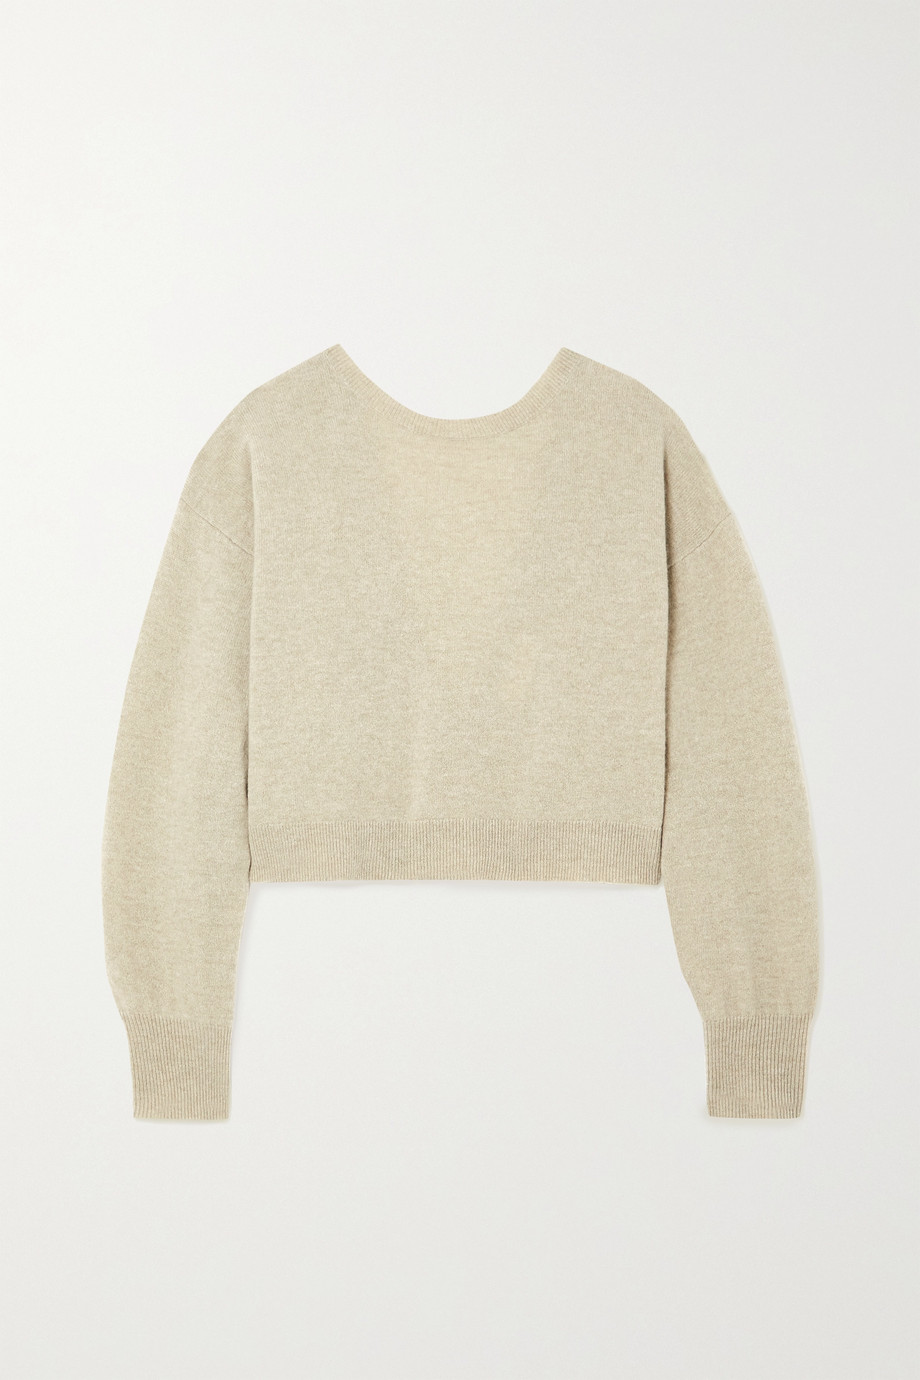 REMAIN Birger Christensen Valcyrie cropped open-back merino wool sweater